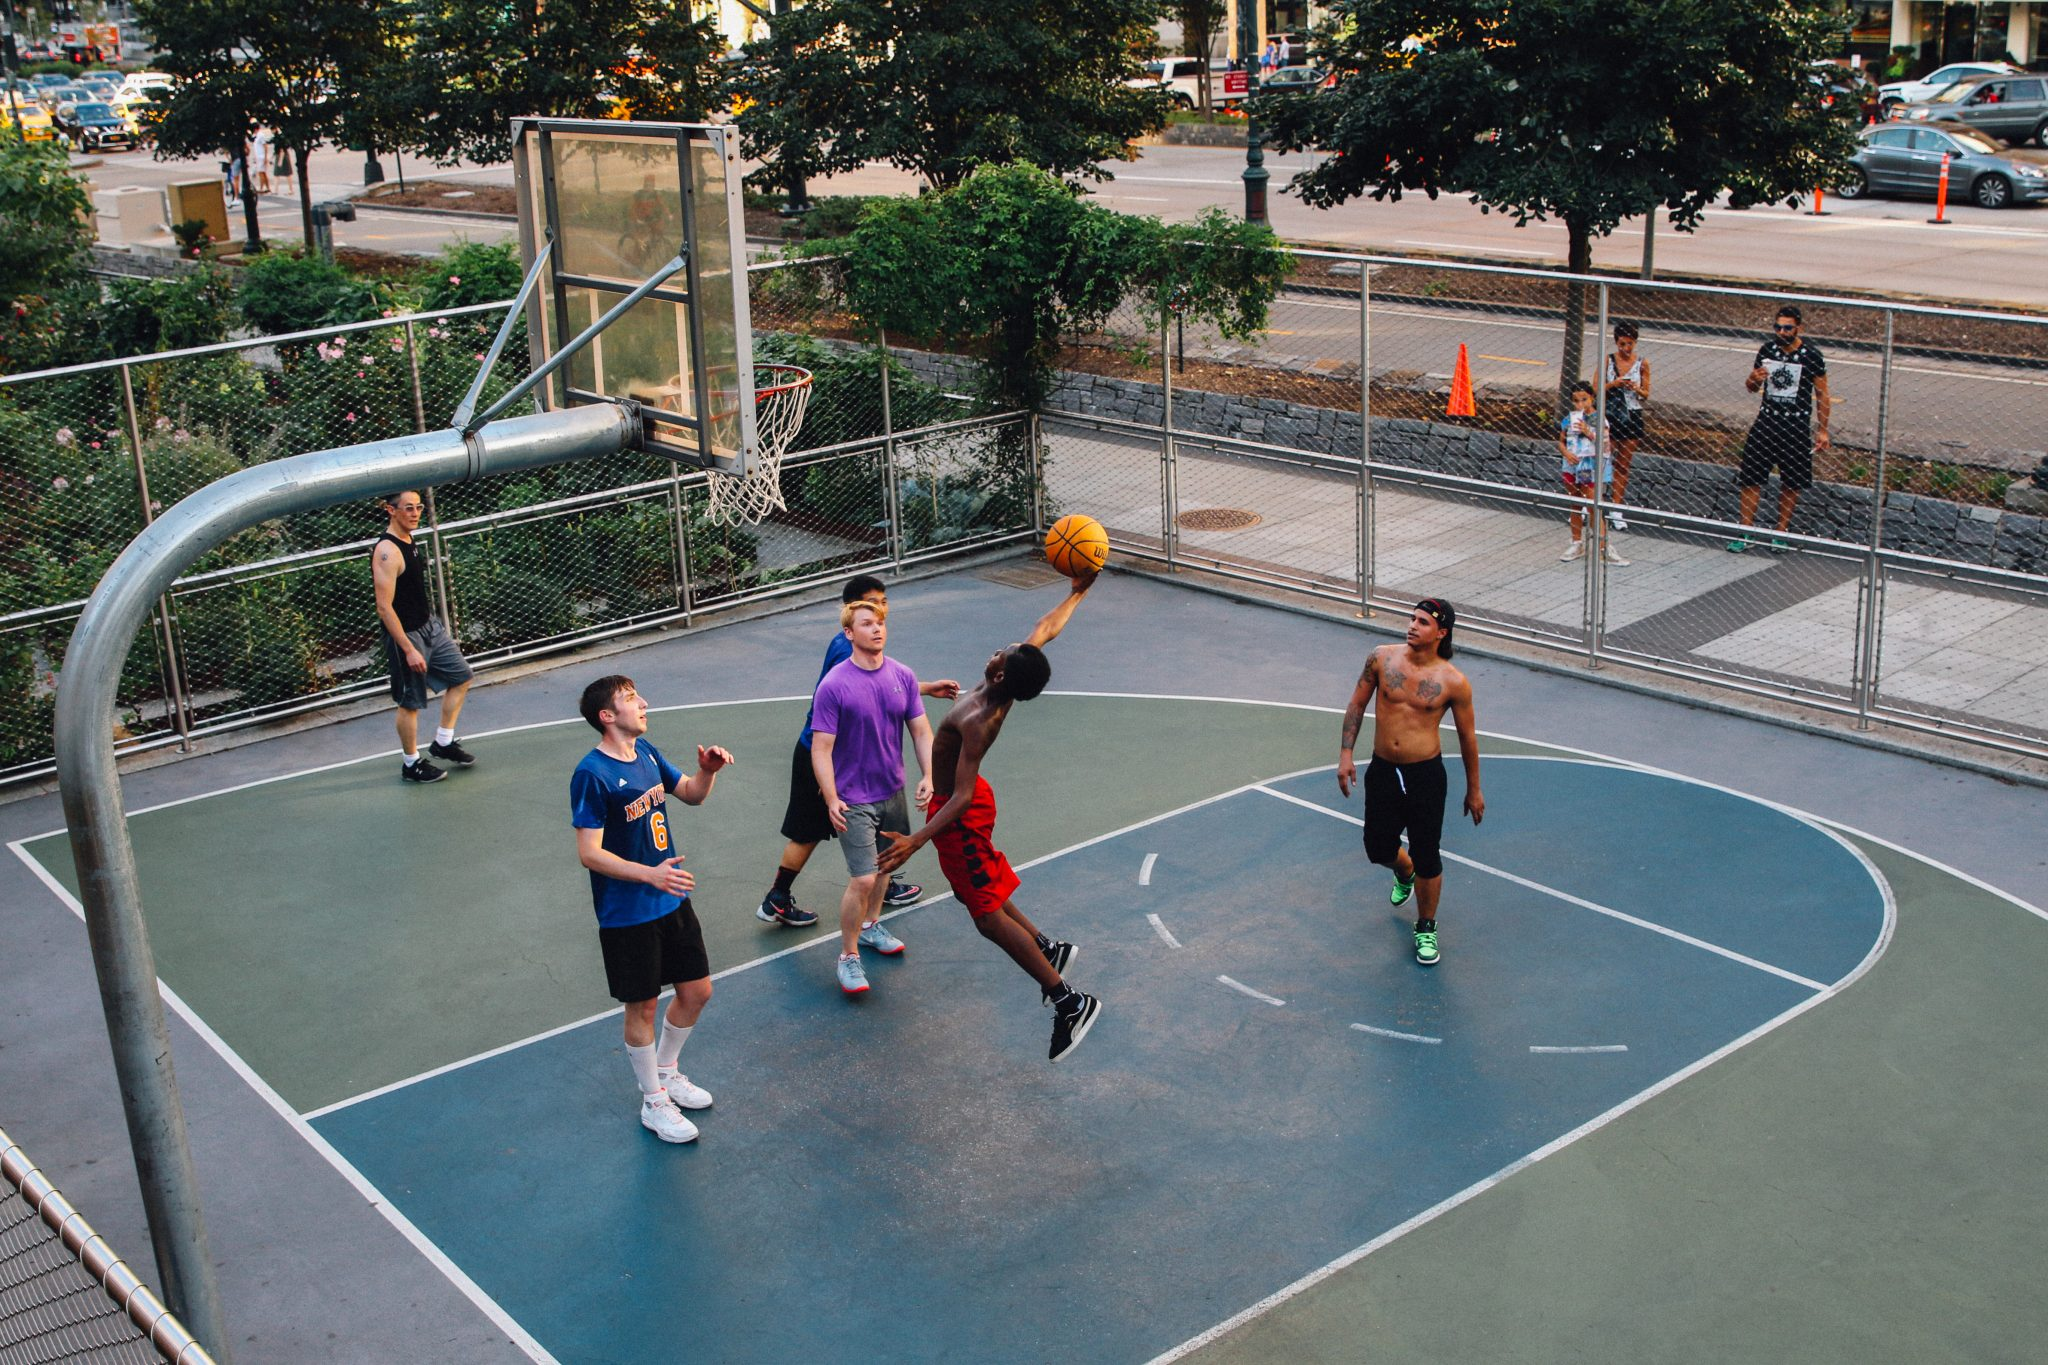 A game of pick-up basketball in Lower Manhatten. Luke Galati Photography in NYC